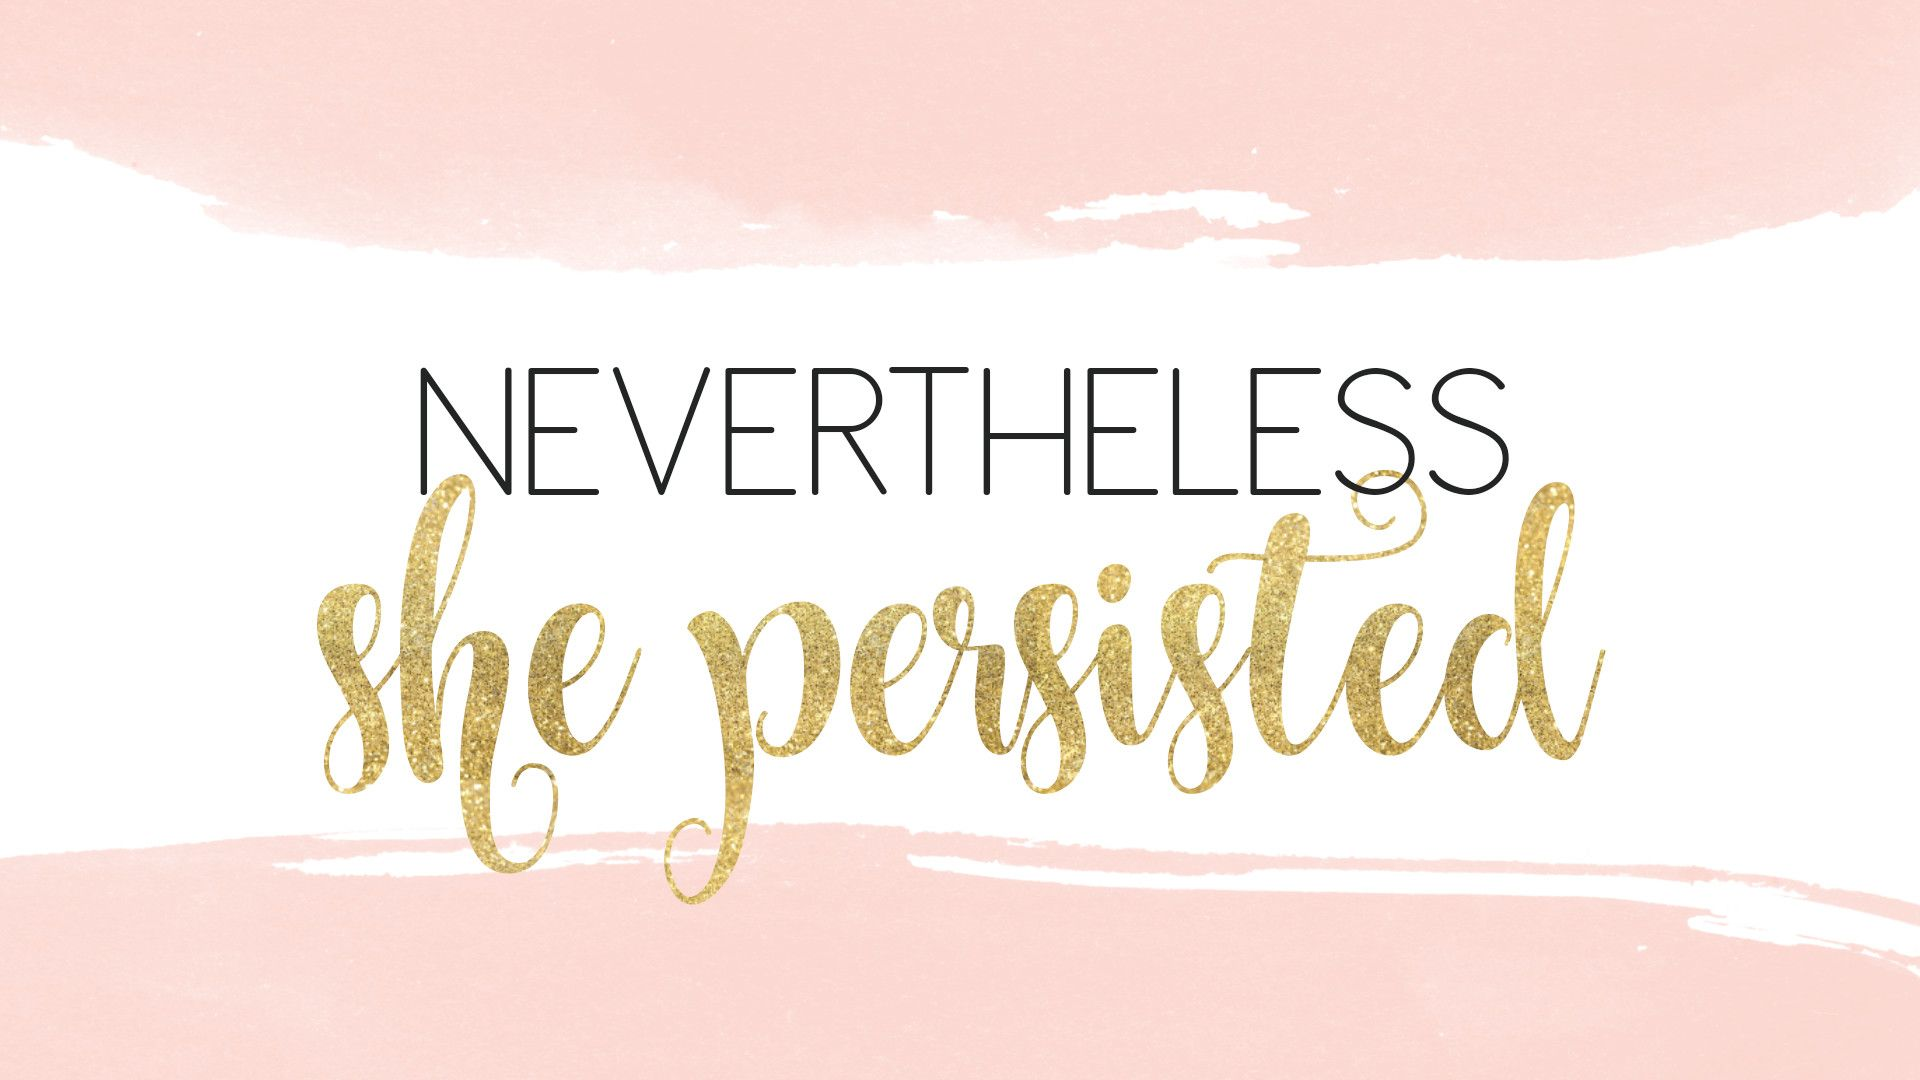 Motivational Quotes For Women Wallpapers - Wallpaper Cave